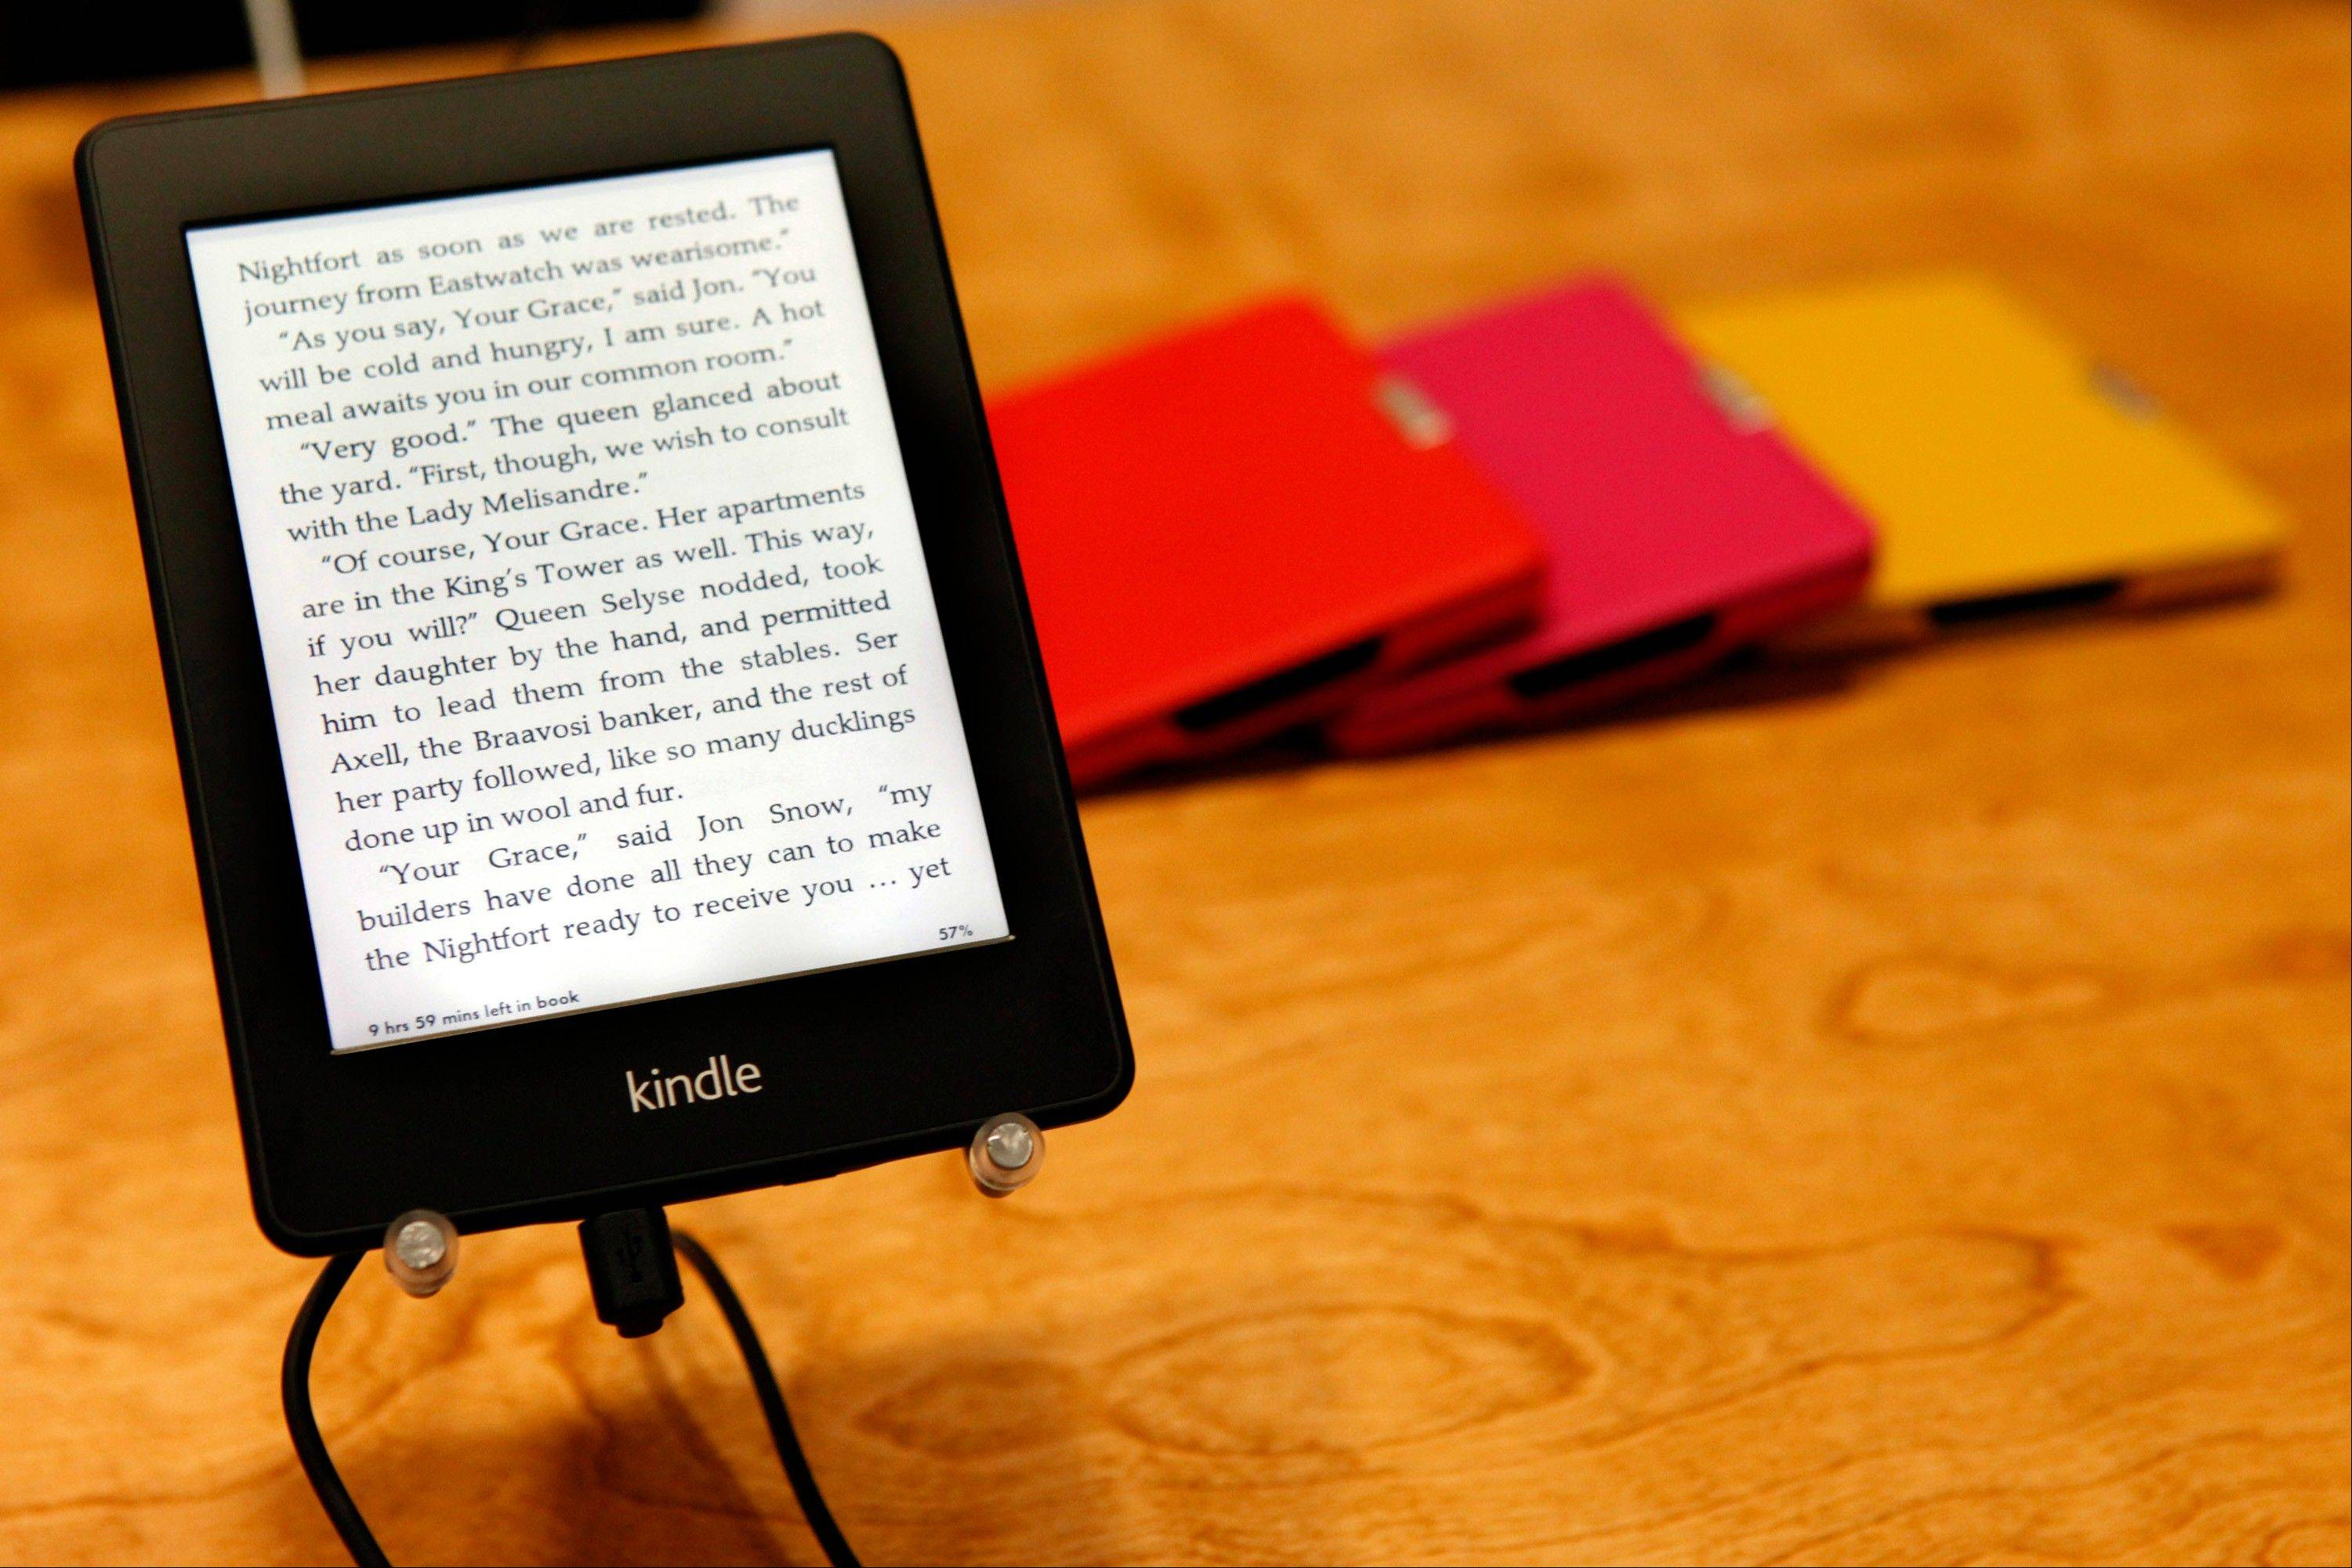 Amazon.com, Inc.'s Kindle Paperwhite tablet sits on display after a news conference in Santa Monica. If you're going to buy an e-reader, Farhad Manjoo recommends you buy an illuminated one.